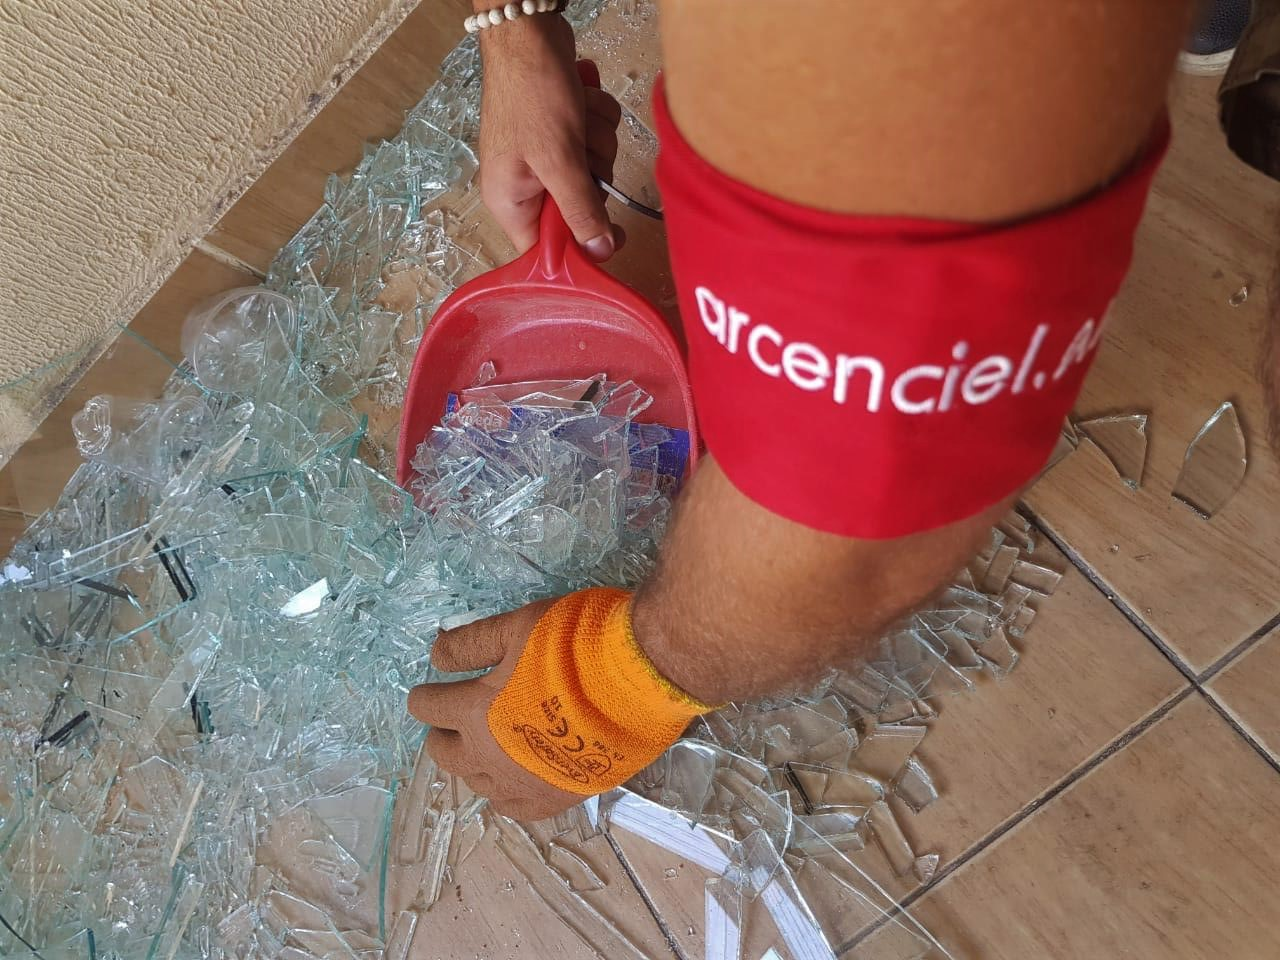 A volunteer collecting glass debris for recycling.